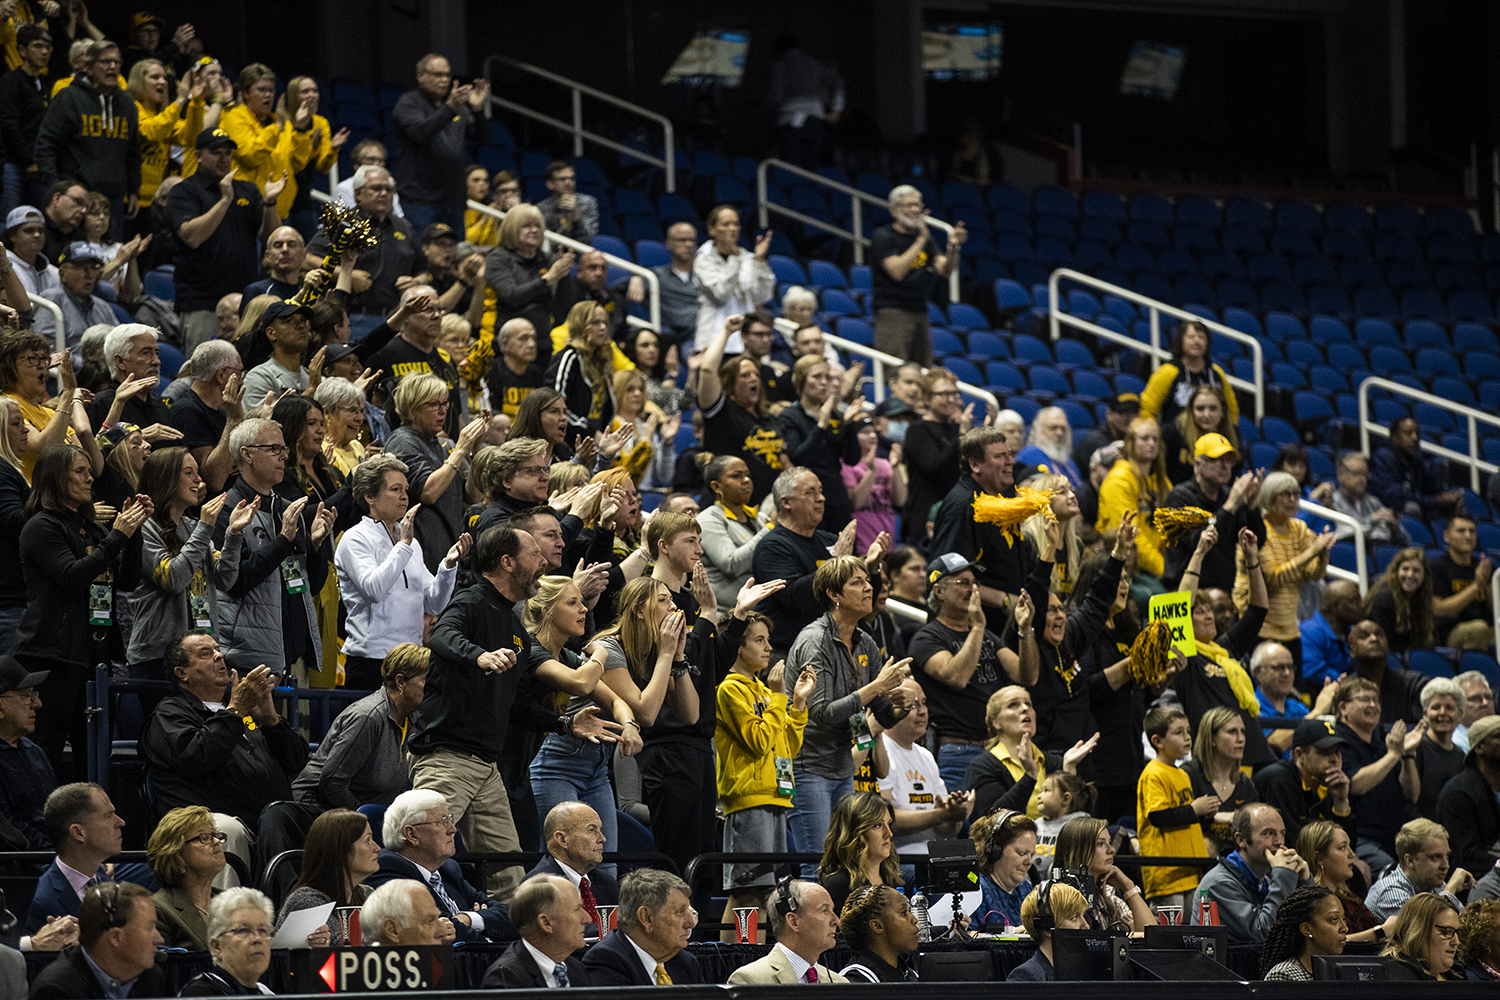 Iowa+fans+cheer+during+the+NCAA+Elite+8+game+against+Baylor+at+the+Greensboro+Coliseum+Complex+on+Monday%2C+April+1%2C+2019.+The+Bears+defeated+the+Hawkeyes+85-53.